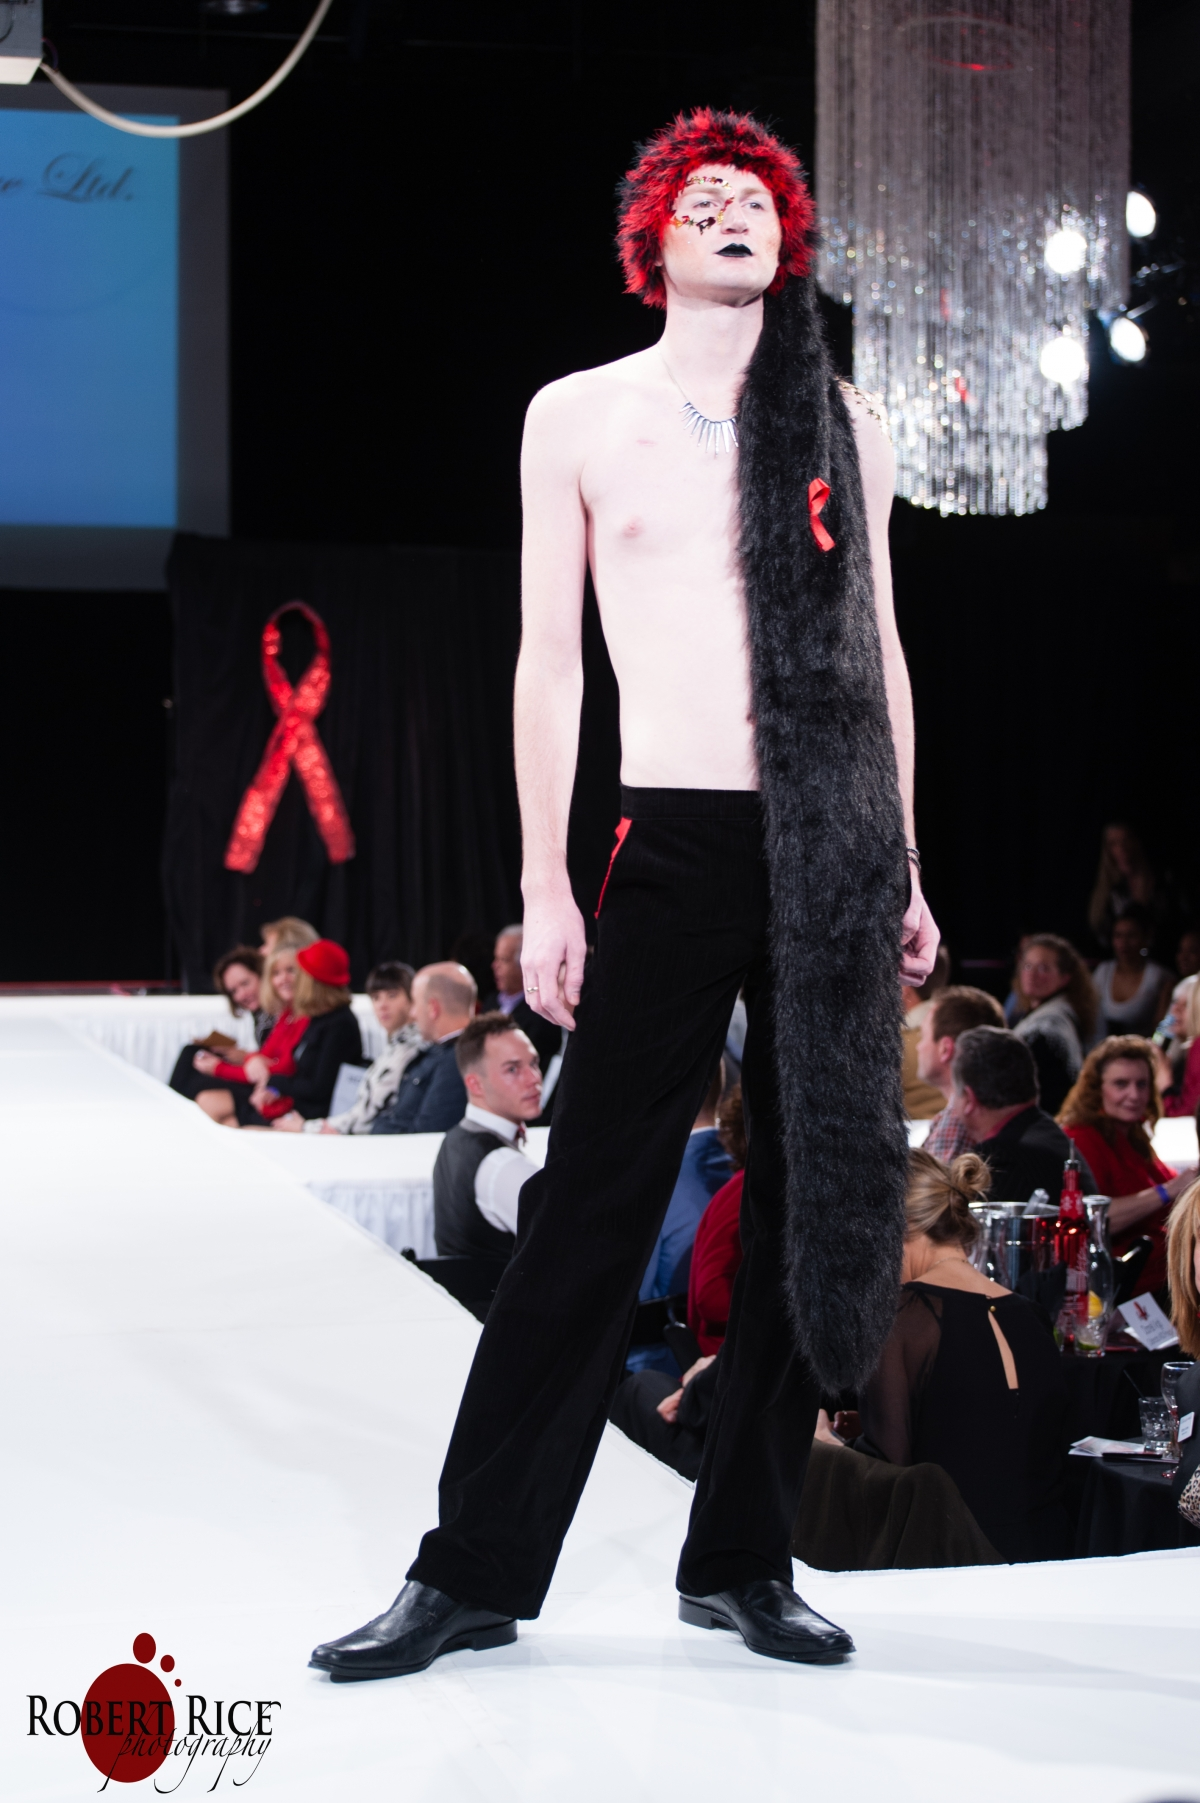 Red Ball Denver 2014 Scandalous Couture